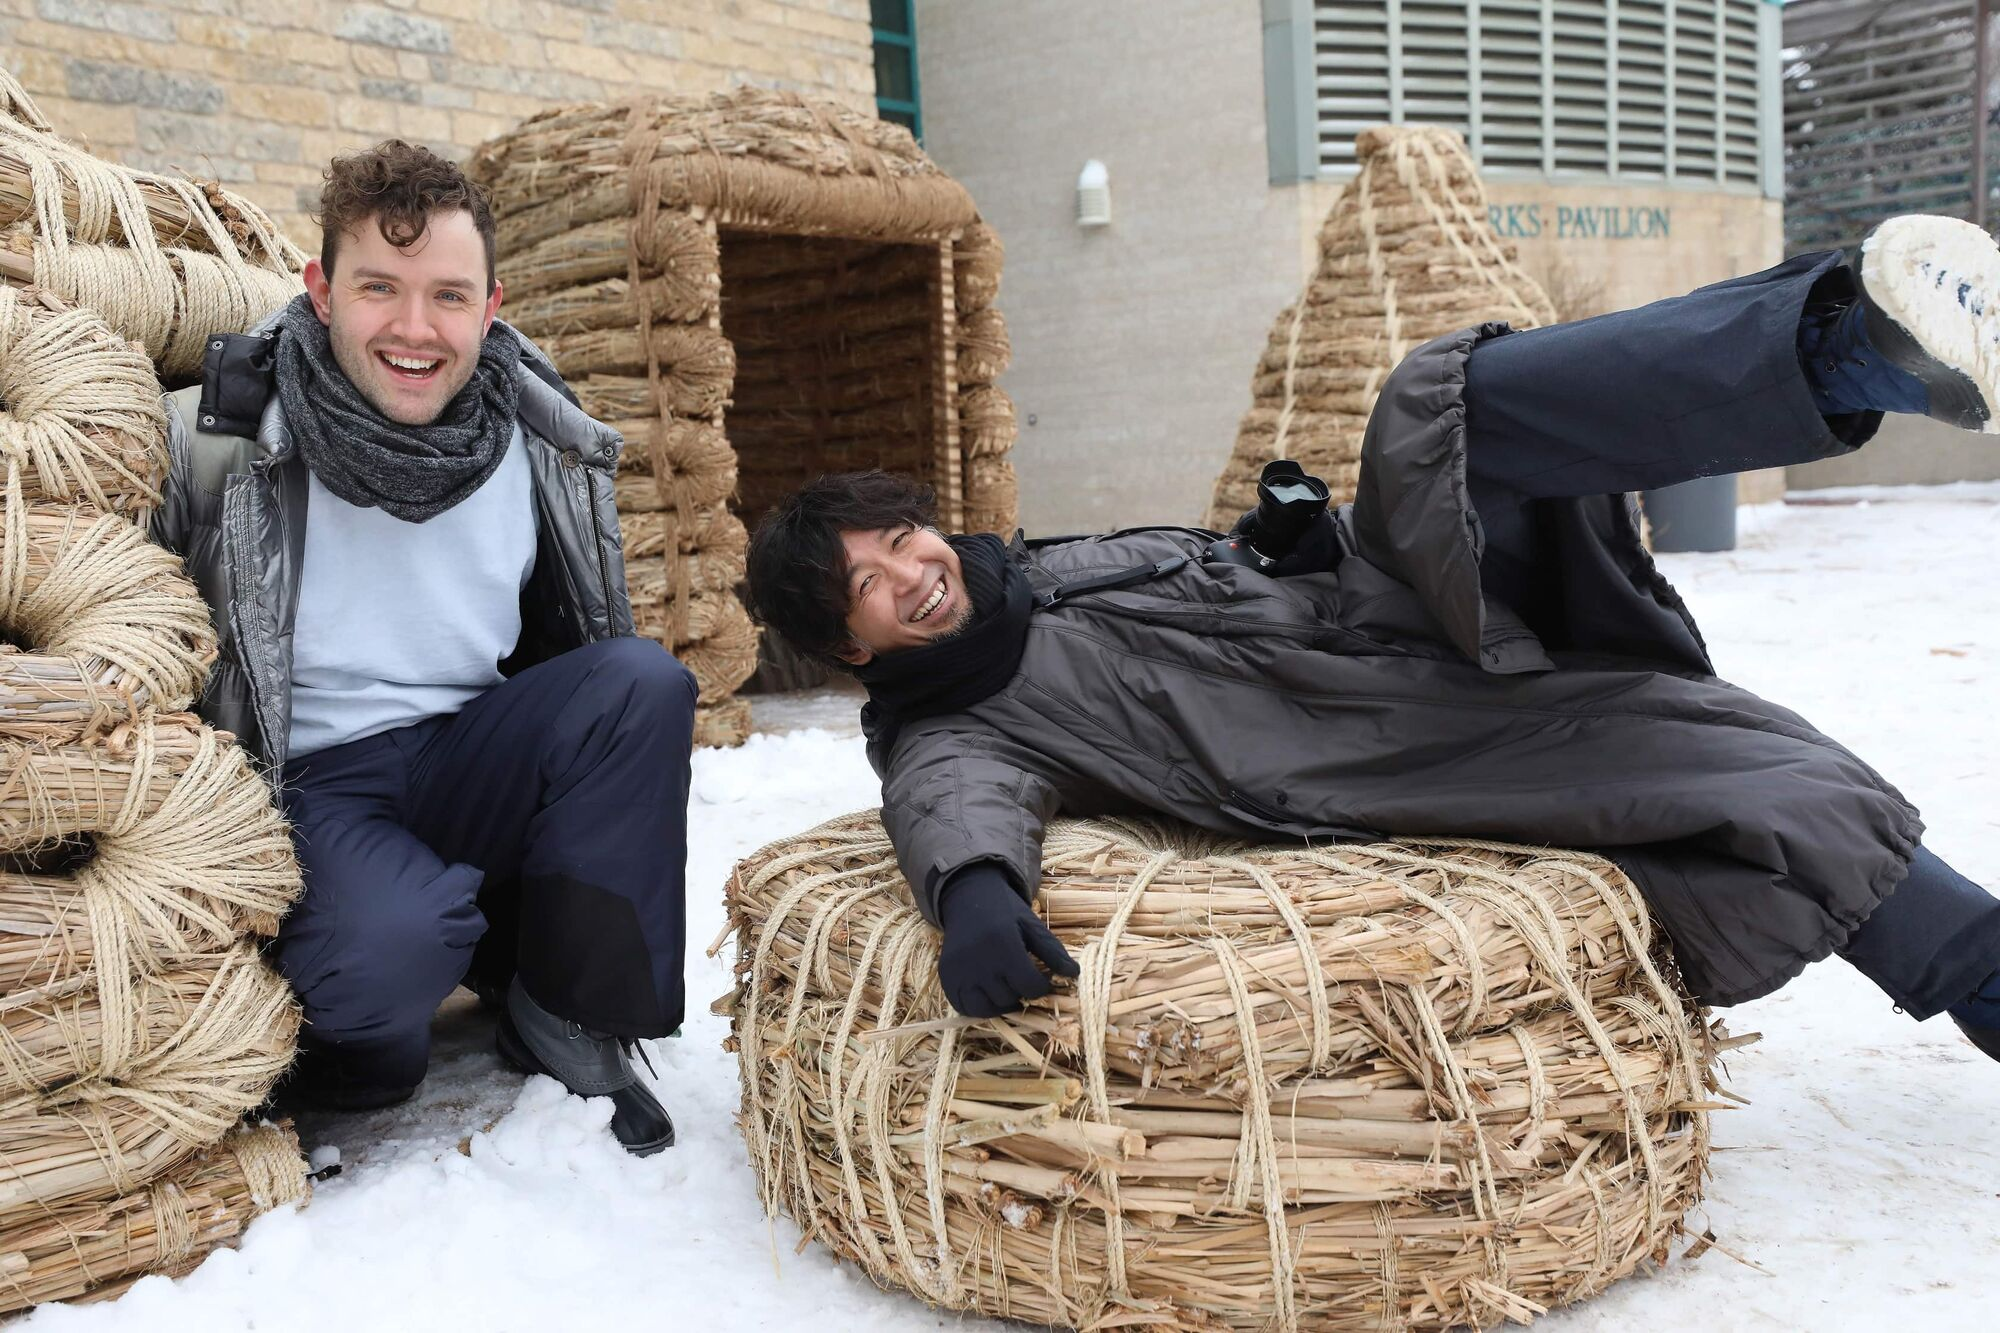 Team members Masato Ashida (right) and Adrian Steckeweh pose for photos in their version of a warming hut at the Forks Friday. The architectural team from Japan showcased what they call Forrest Village for their 2020 entry, one of  the 3 winners in the Forks warming hut competition. (Ruth Bonneville / WInnipeg Free Press)